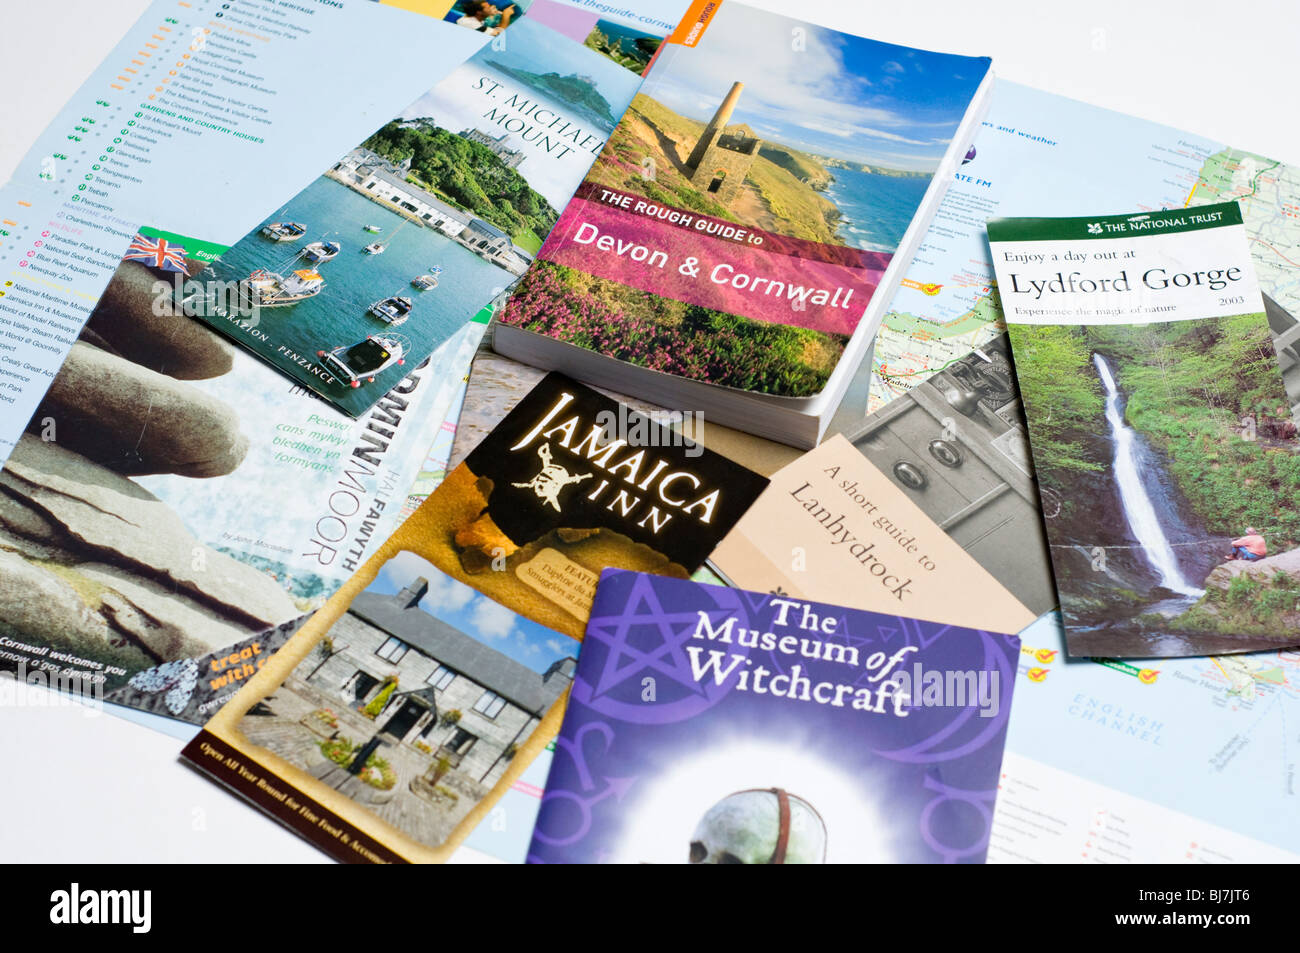 A selection of travel guide books and leaflets about Cornwall in England, UK - Stock Image